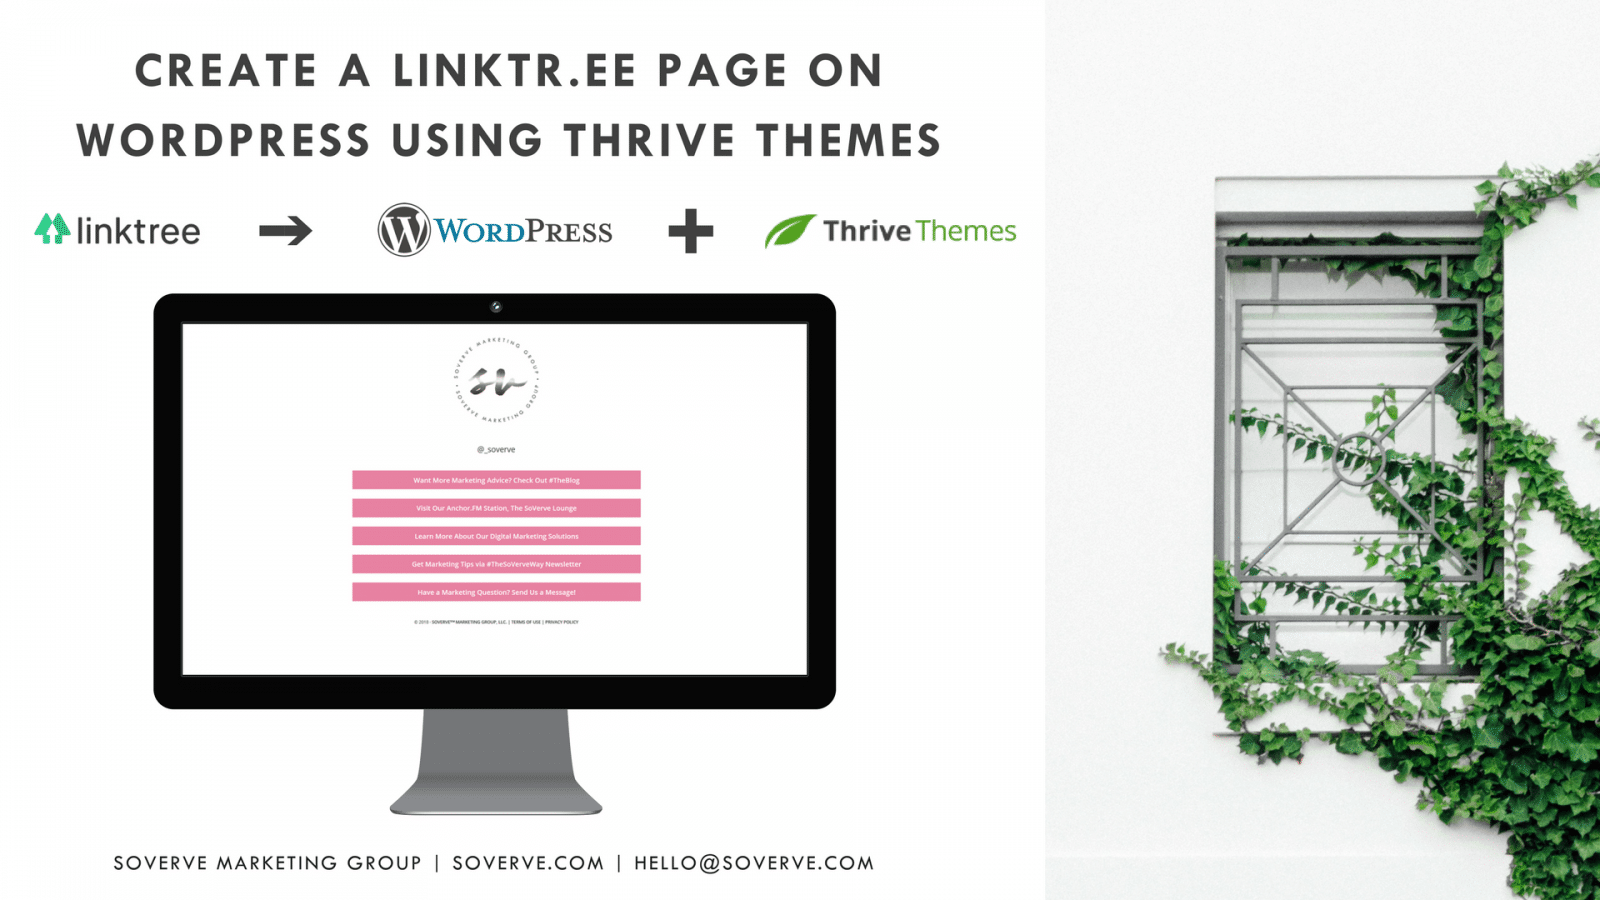 Self-Hosted Marketing and Thrive Themes Video Tutorial! • SoVerve